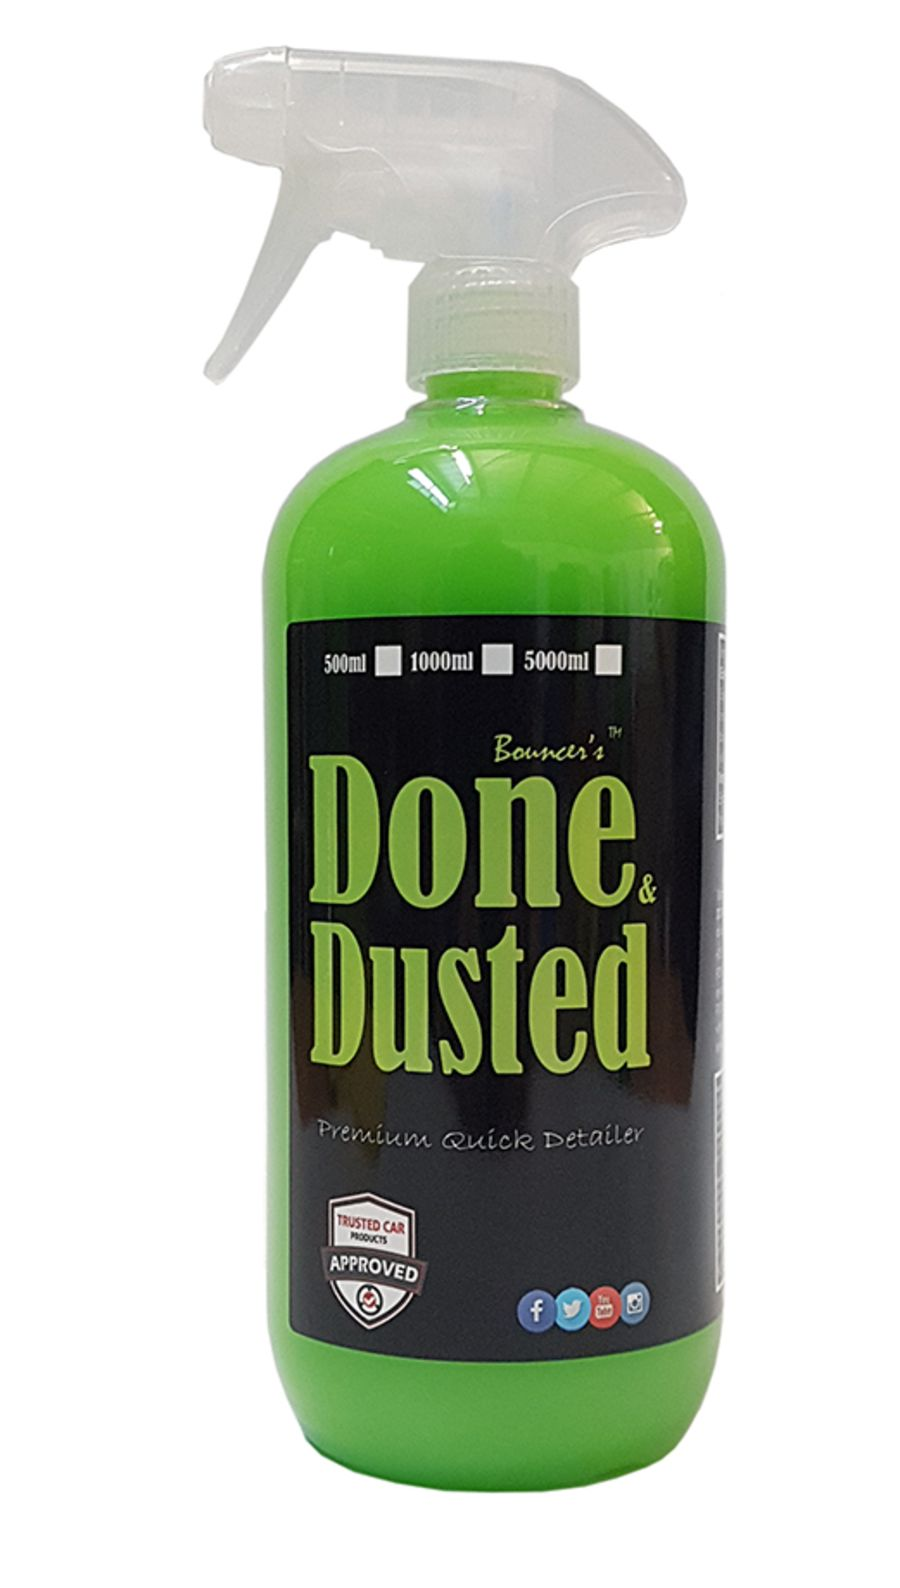 Bouncer's Done & Dusted Quick Detailer 1000ml